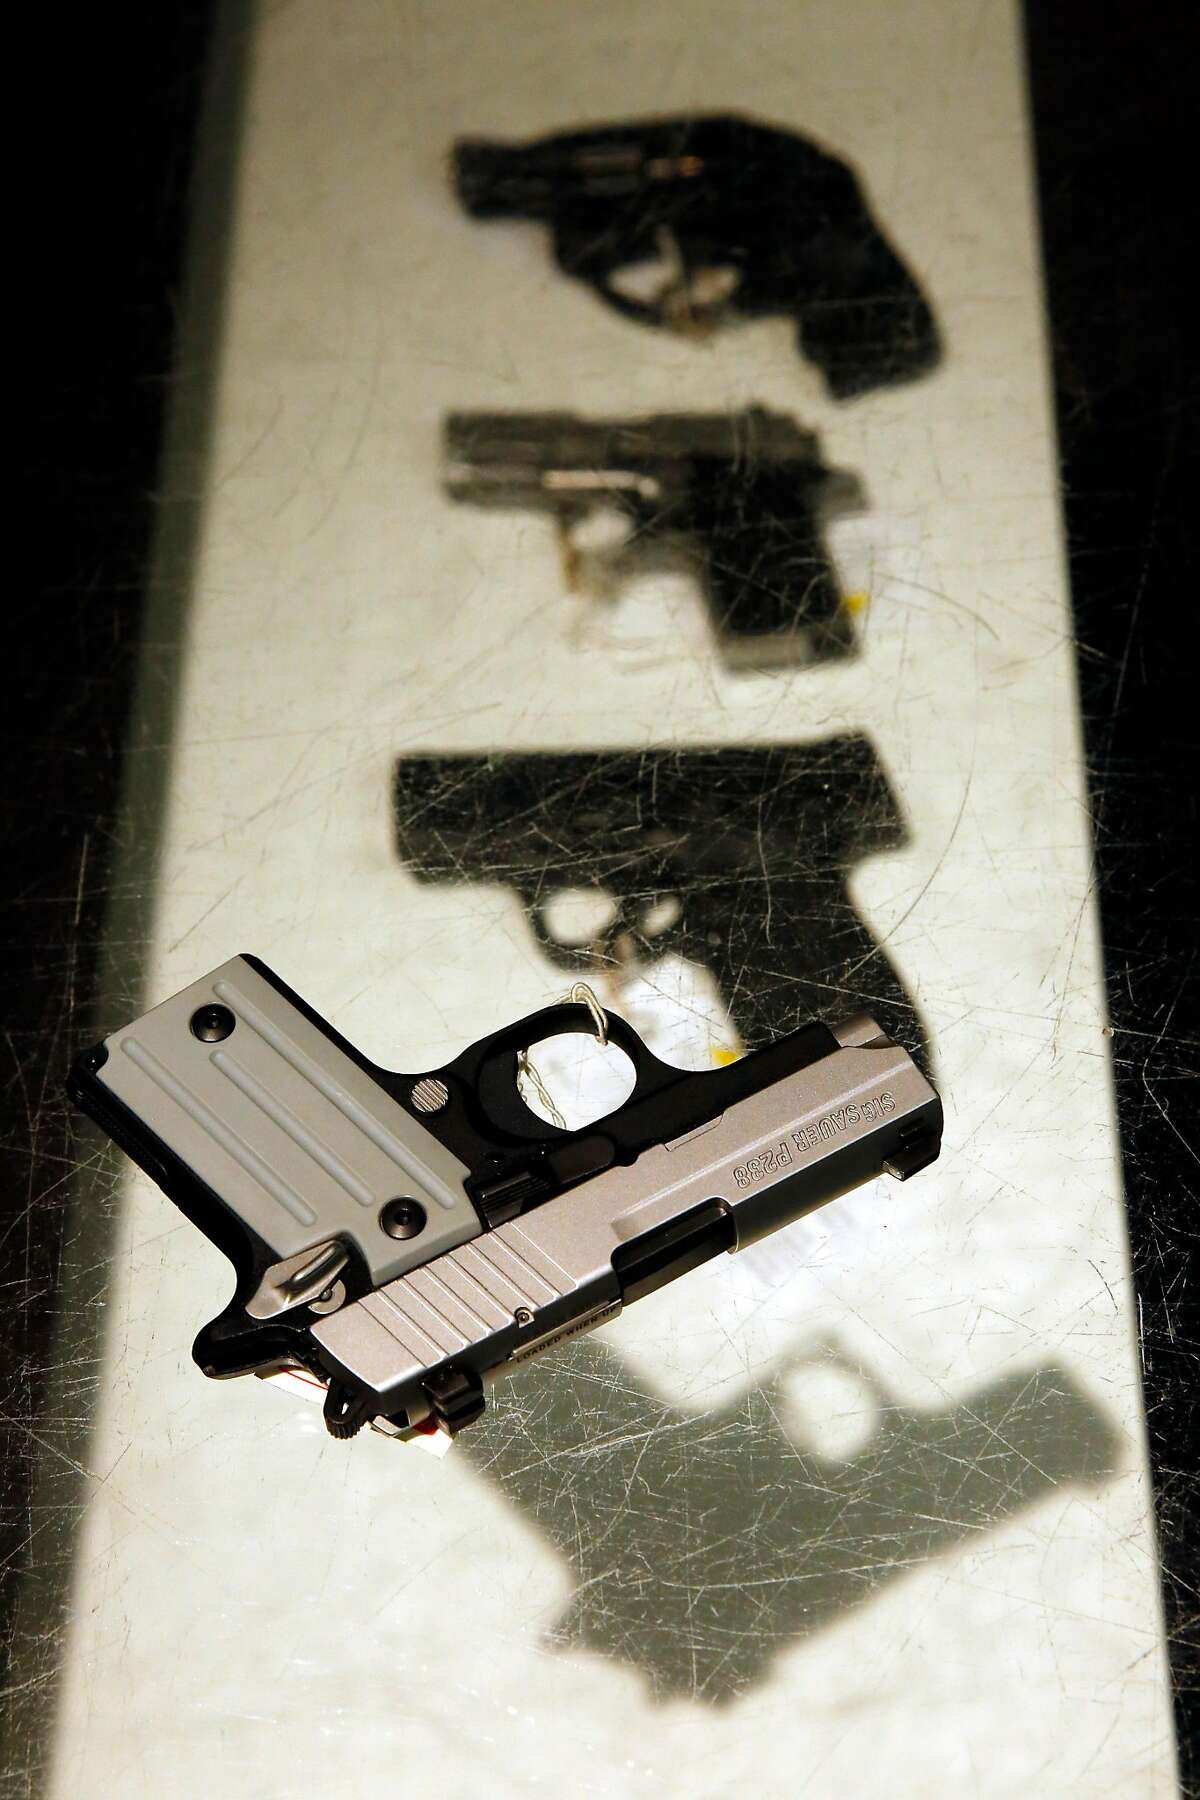 A small handgun is displayed at a gun shop on Monday June 26, 2017. The U.S. Supreme Court rejected a challenge by gun groups Monday to California's concealed-weapons law, which requires gun owners to get a license from law enforcement to carry a concealed handgun outside the home.